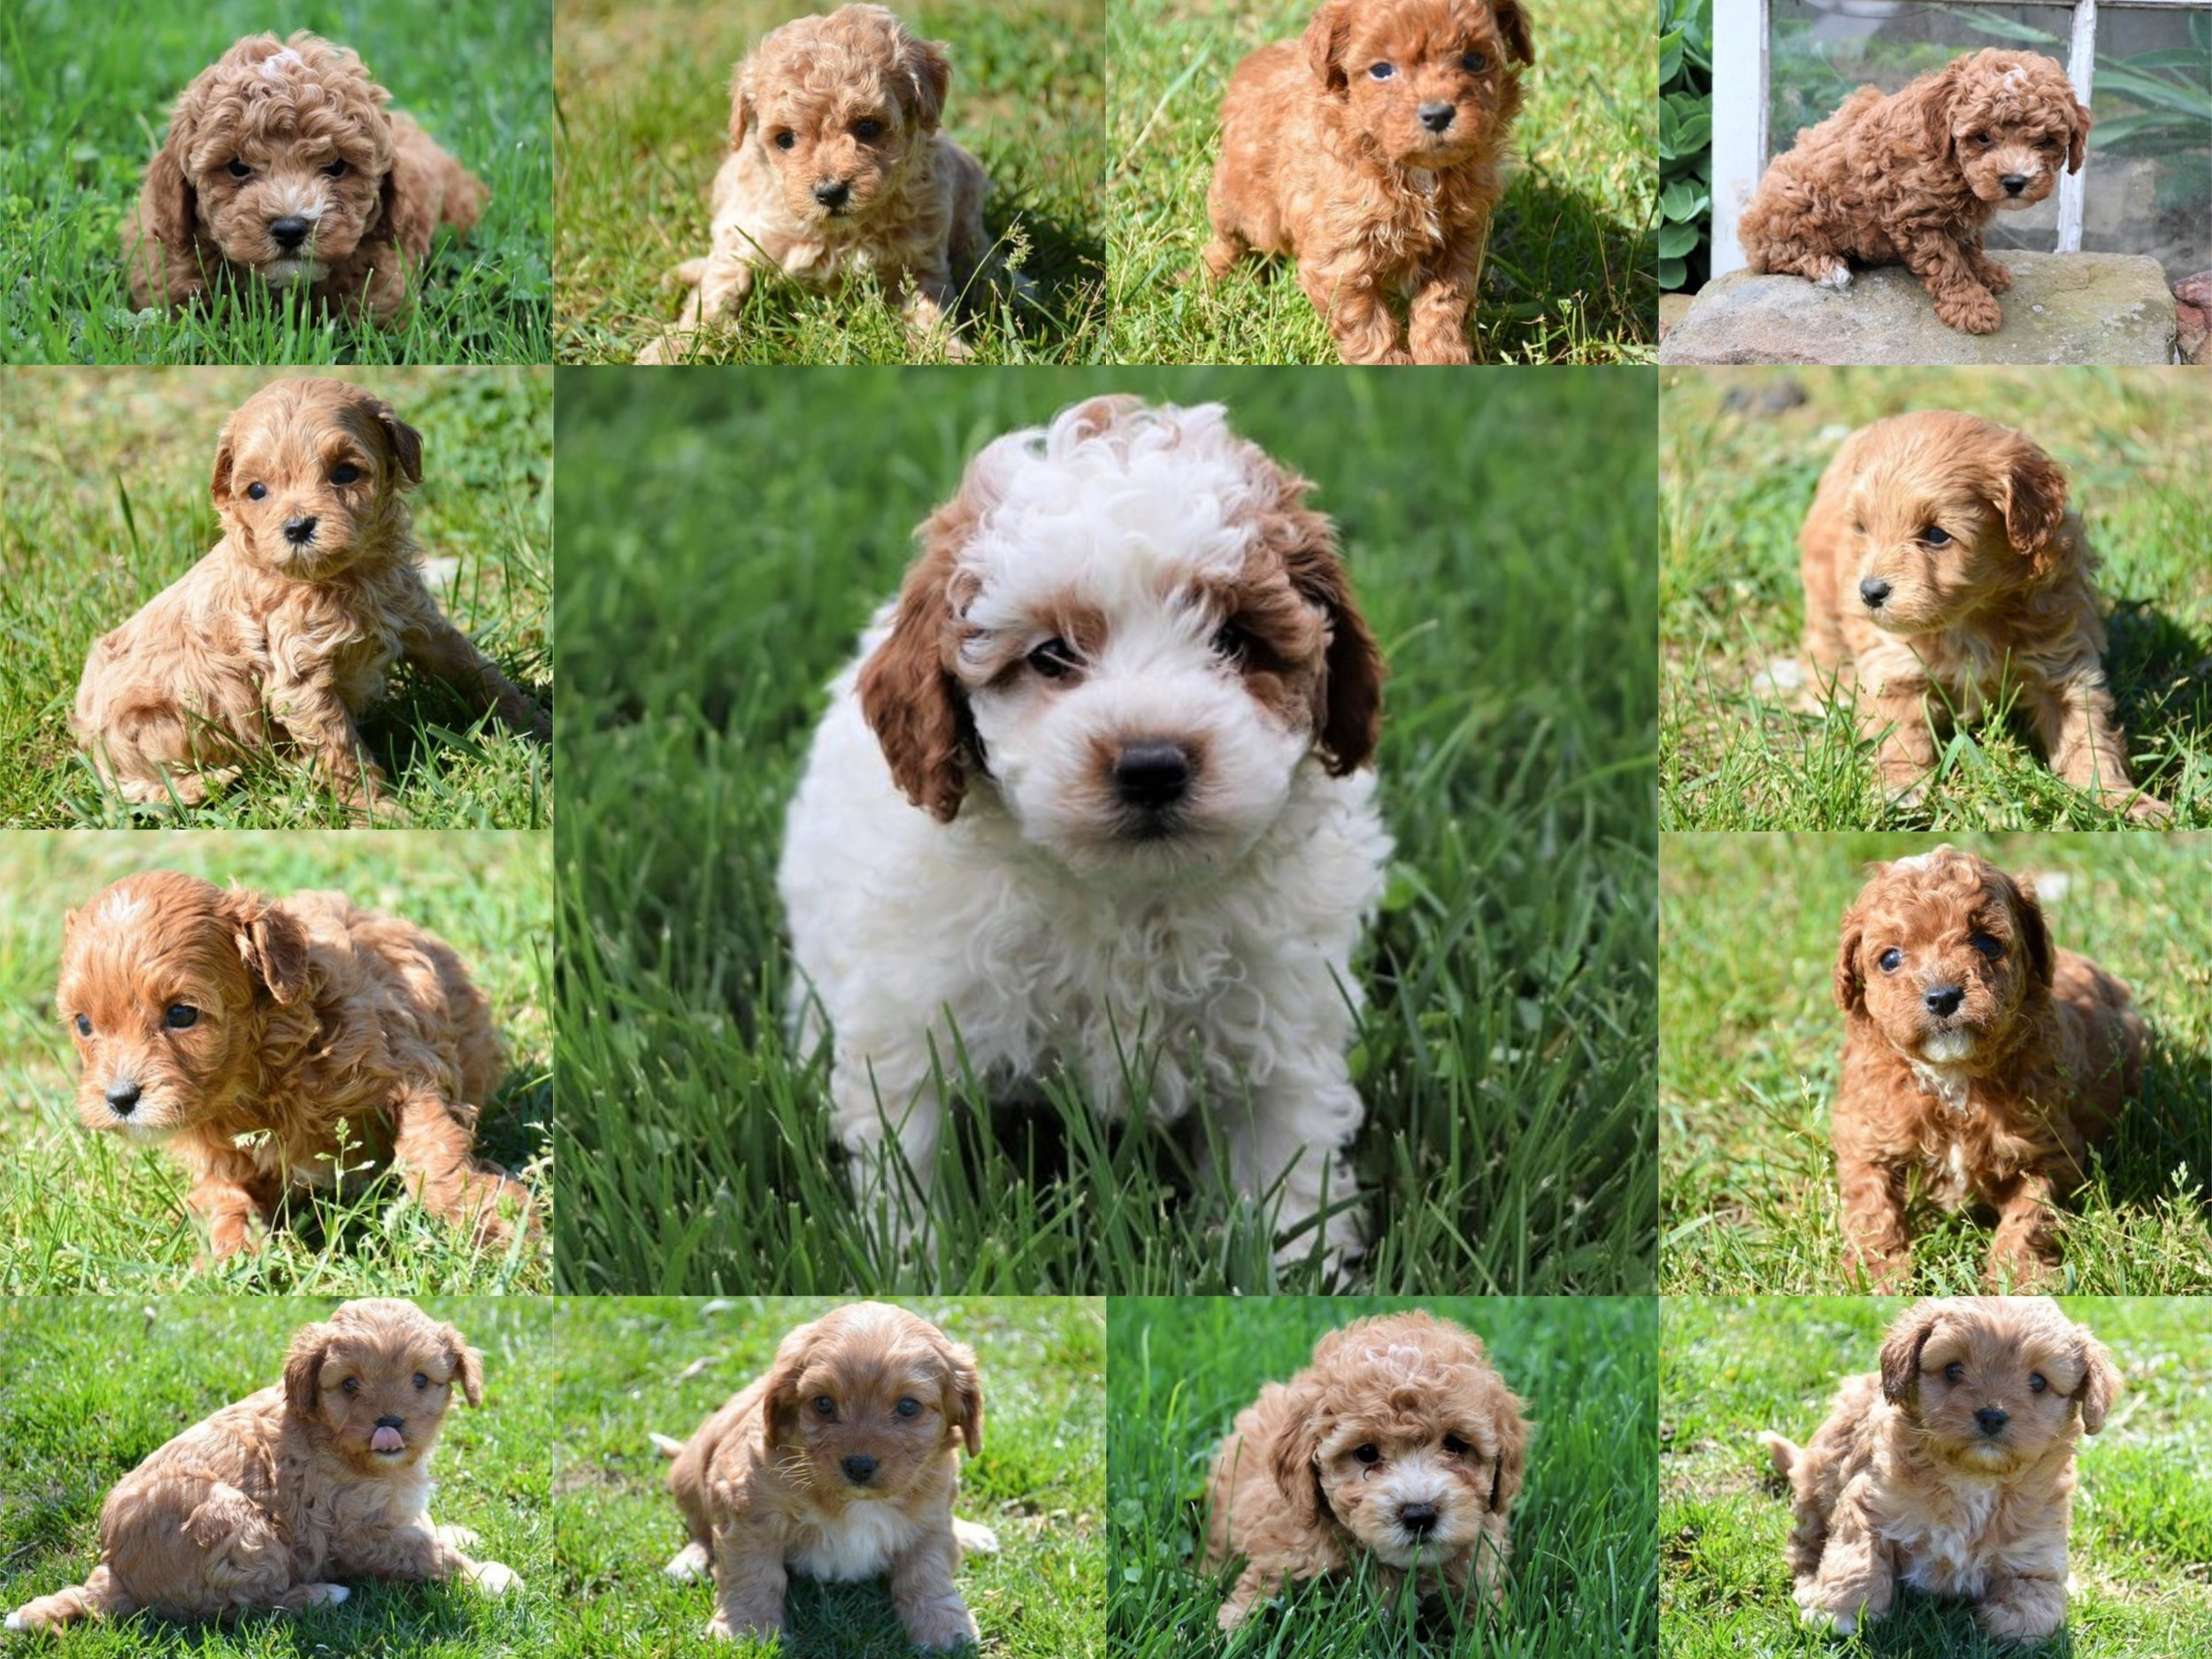 Crockett-Doodles-Cavapoo-collage.jpg